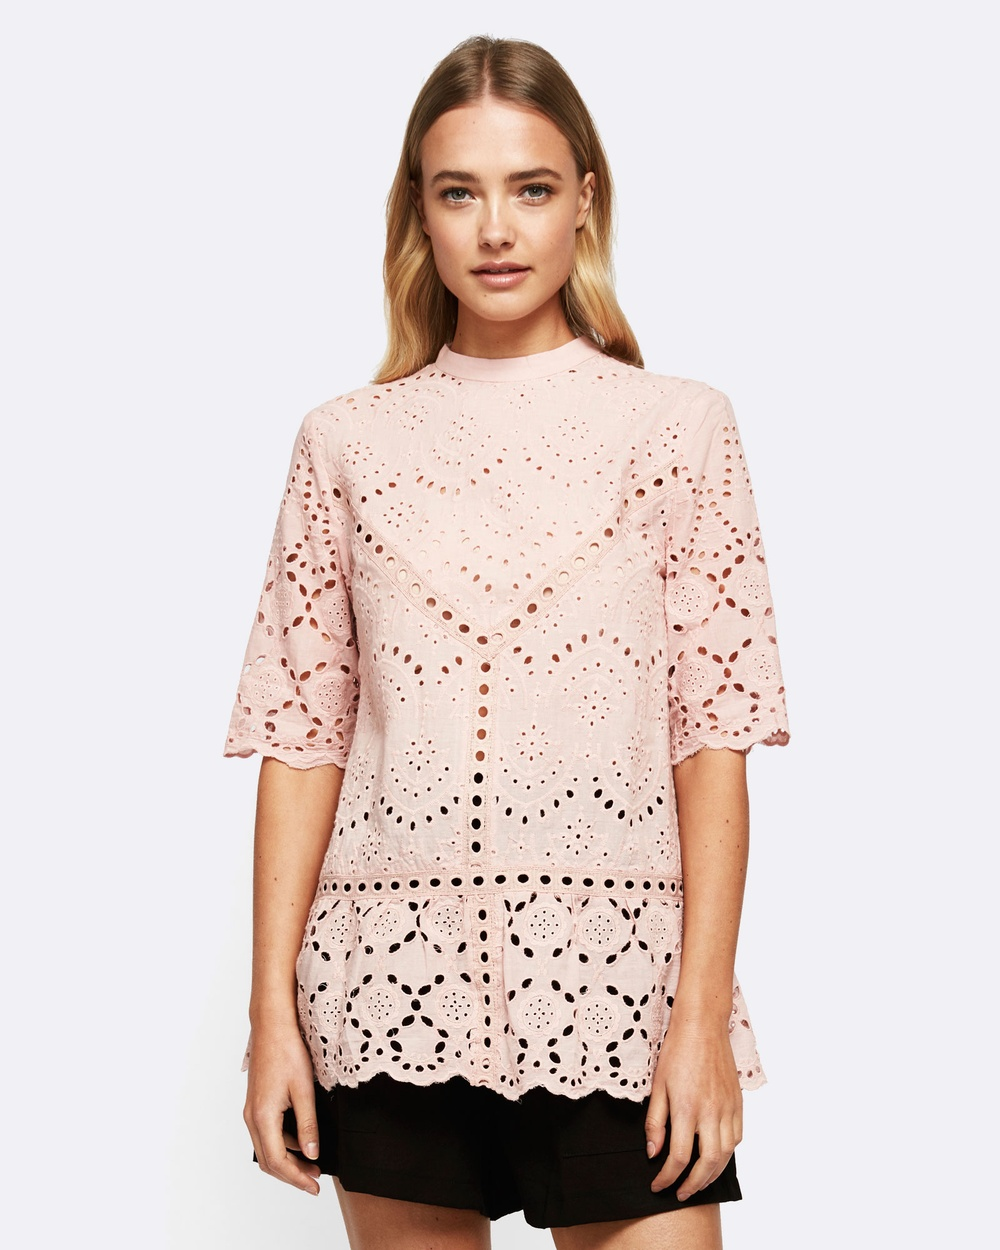 MVN Summer Bloom Lace Top Tops pink Summer Bloom Lace Top